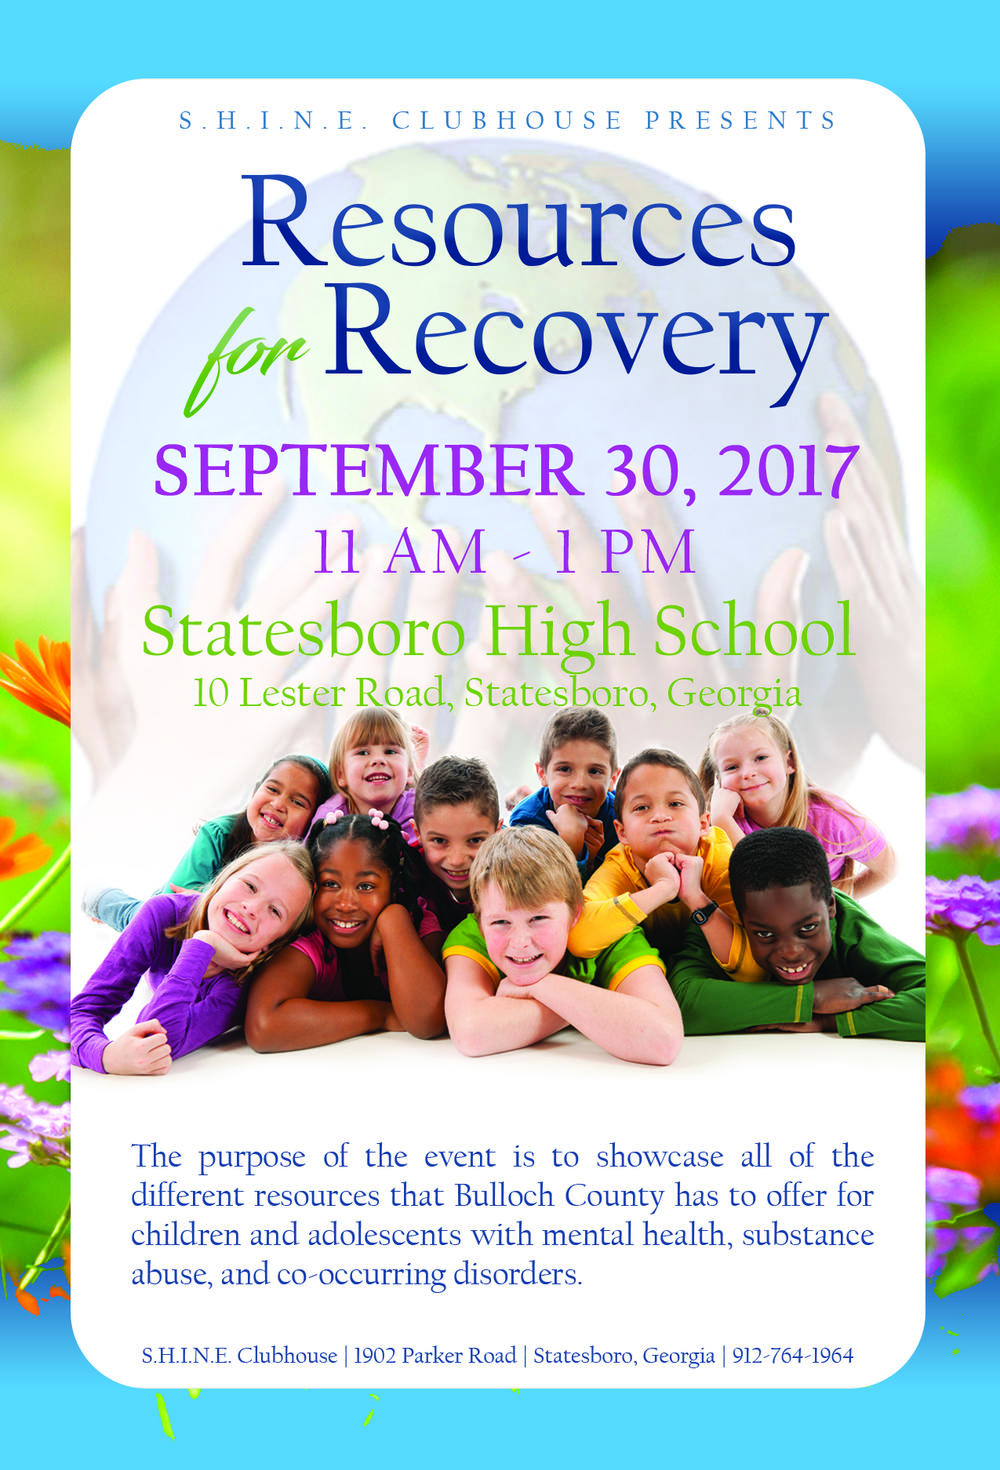 Resources for Recovery flyer